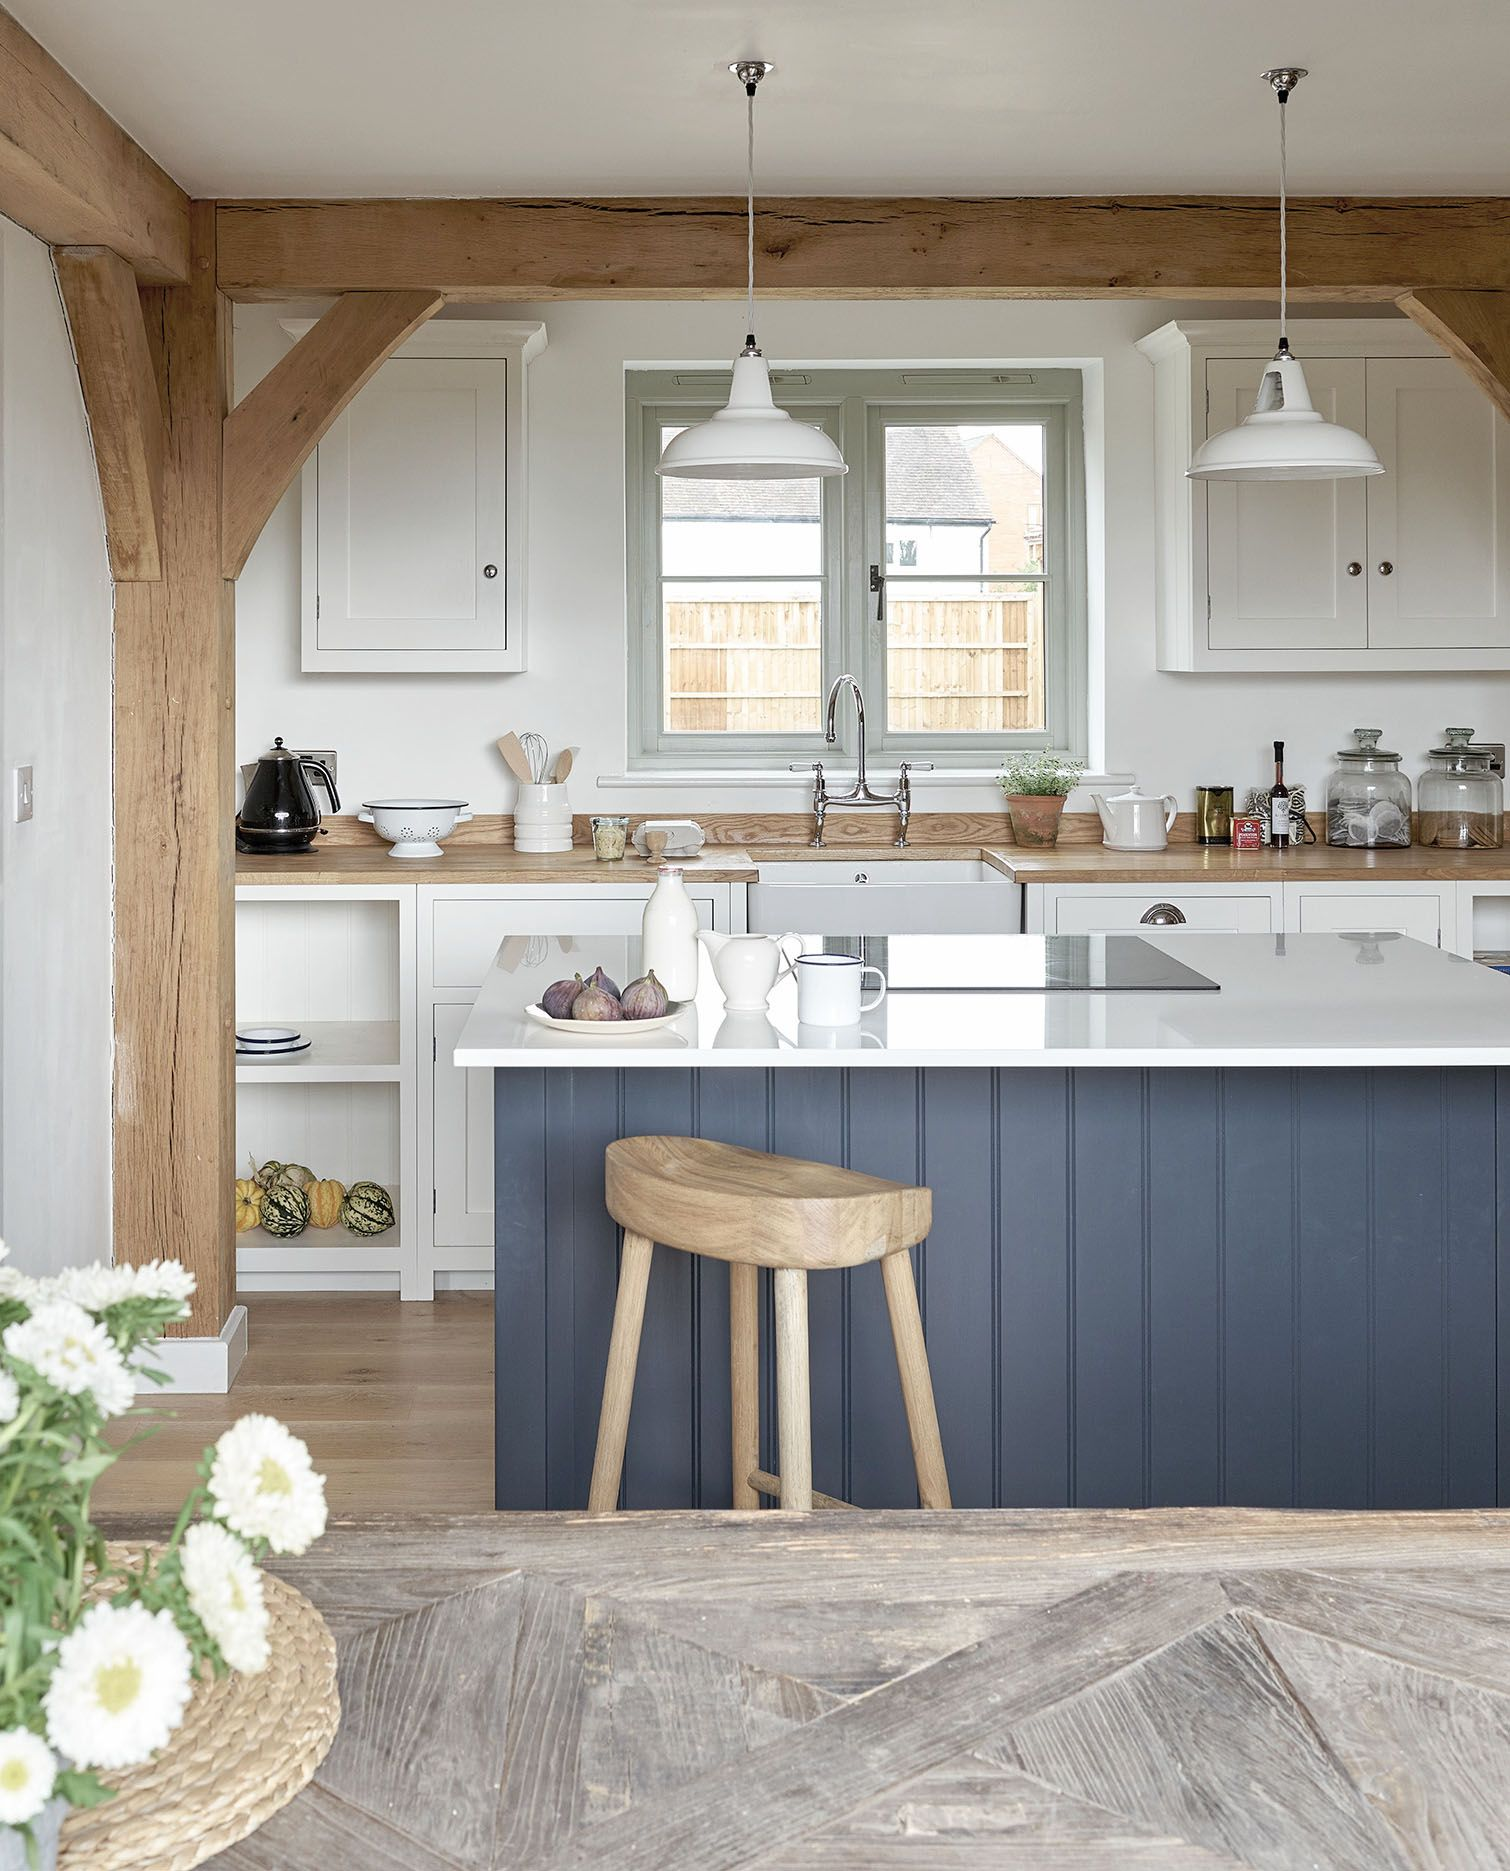 Inspiring kitchens from around the world | Room, Kitchens and Work ...